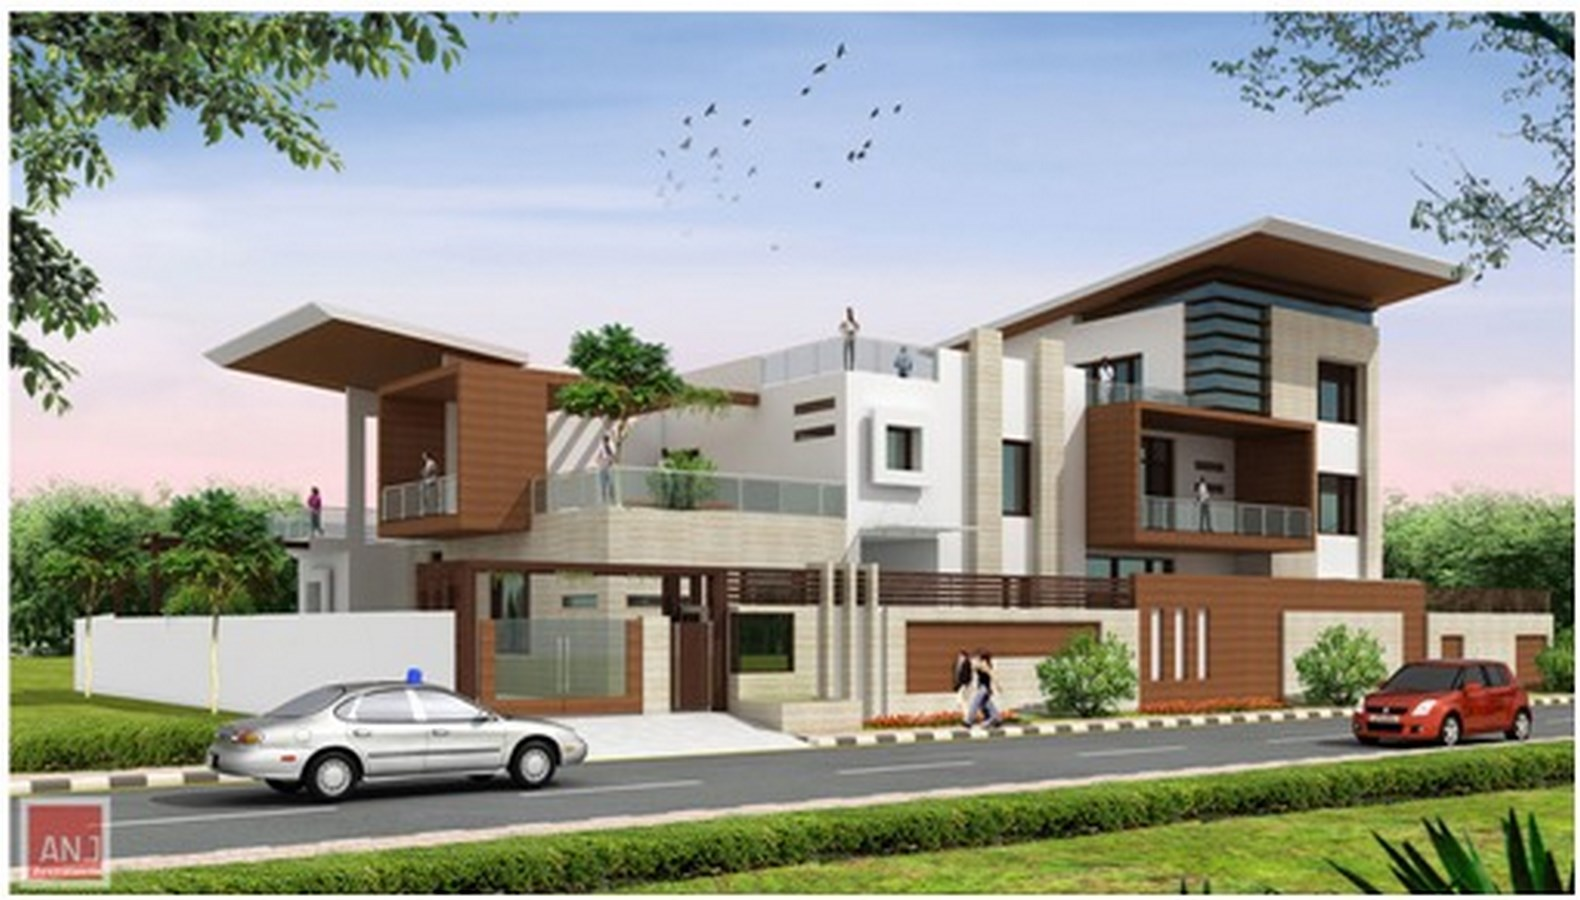 Top 50 Architecture Firms in Gurugram India - architect in gurgaon sector 14 - ANJ Architects